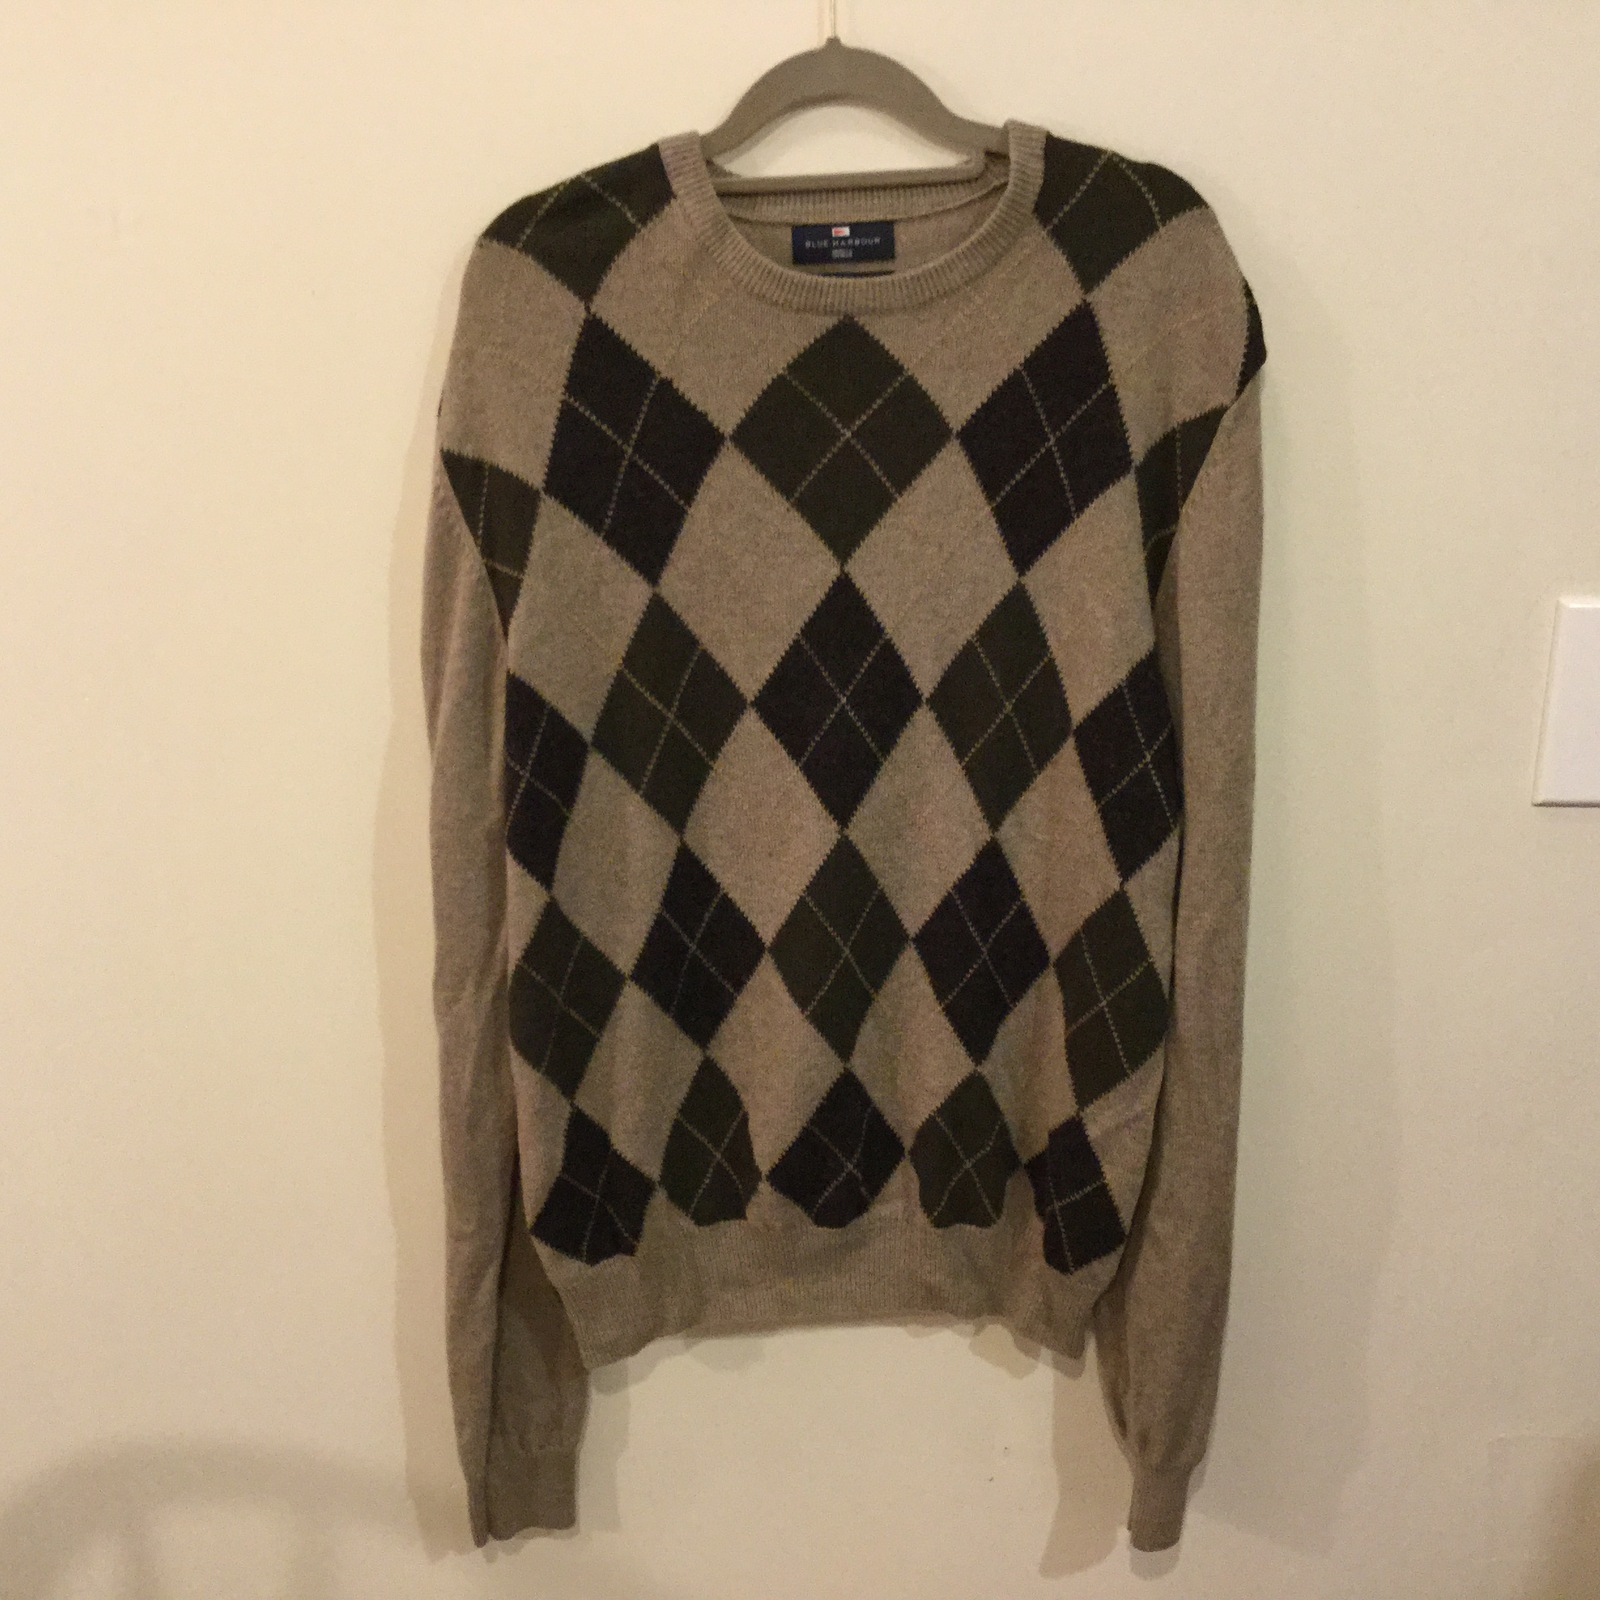 Marks & Spenser Mens Front Diamond Pattern Crew Neck Sweater 100% Wool, size M